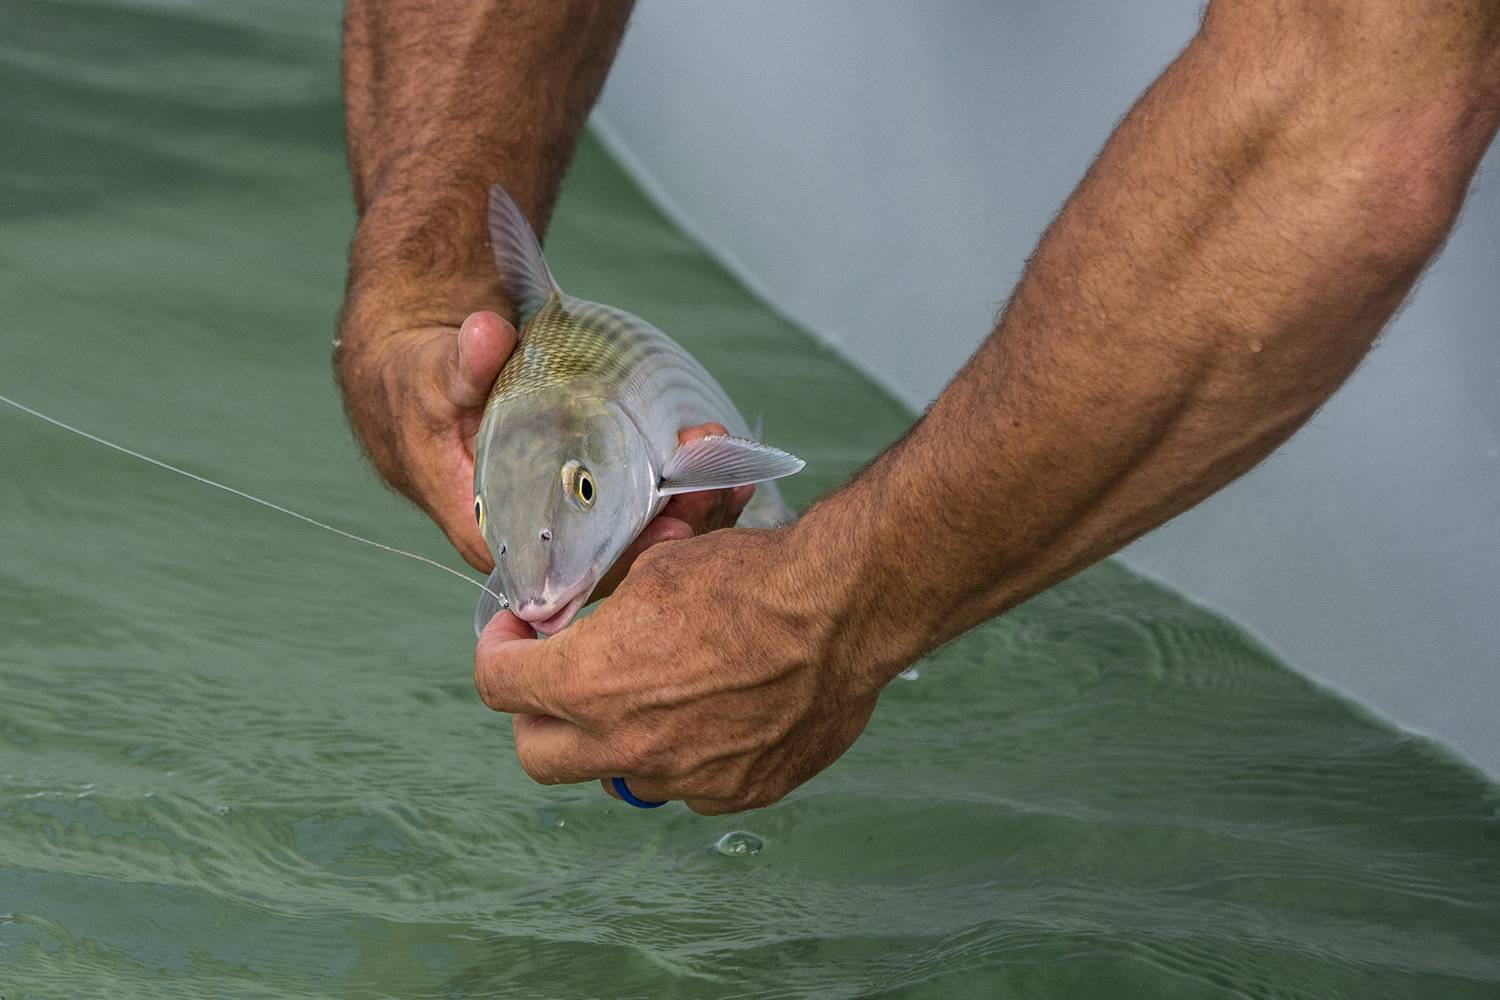 tom-rowland-shows-how-to-tie-a-bonefish-leader-in-the-how-to-tuesday-podcast